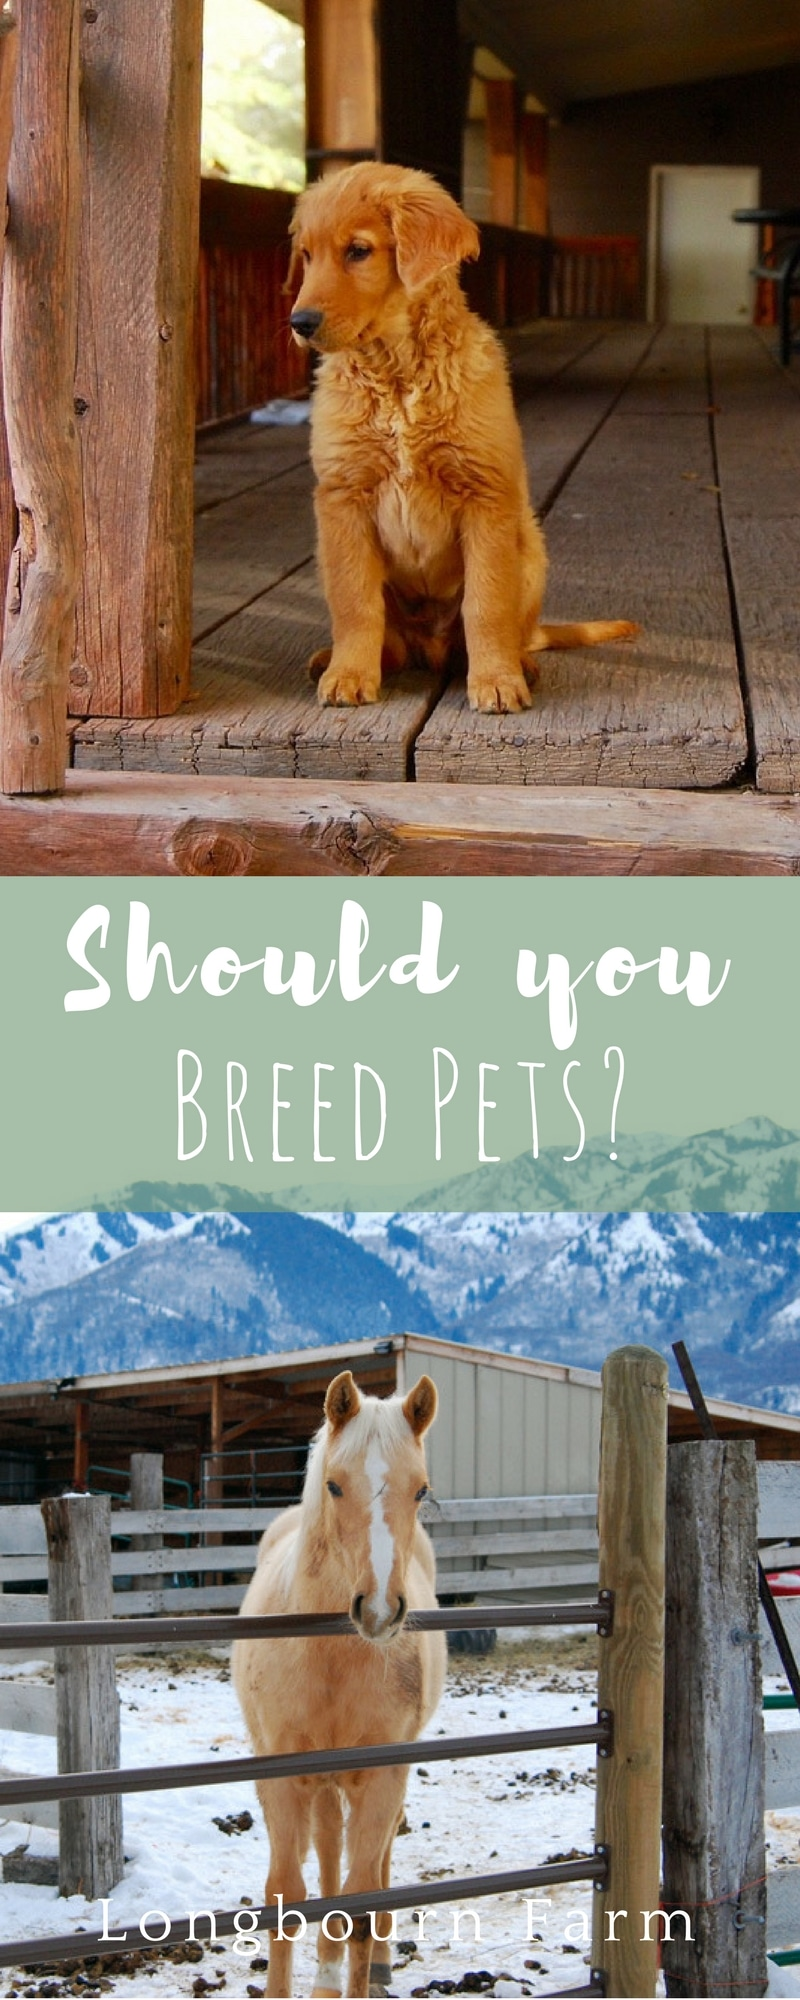 A good starting resource if you are considering breeding pets. Short run-down on genetics and the important things you should consider to be a good breeder.